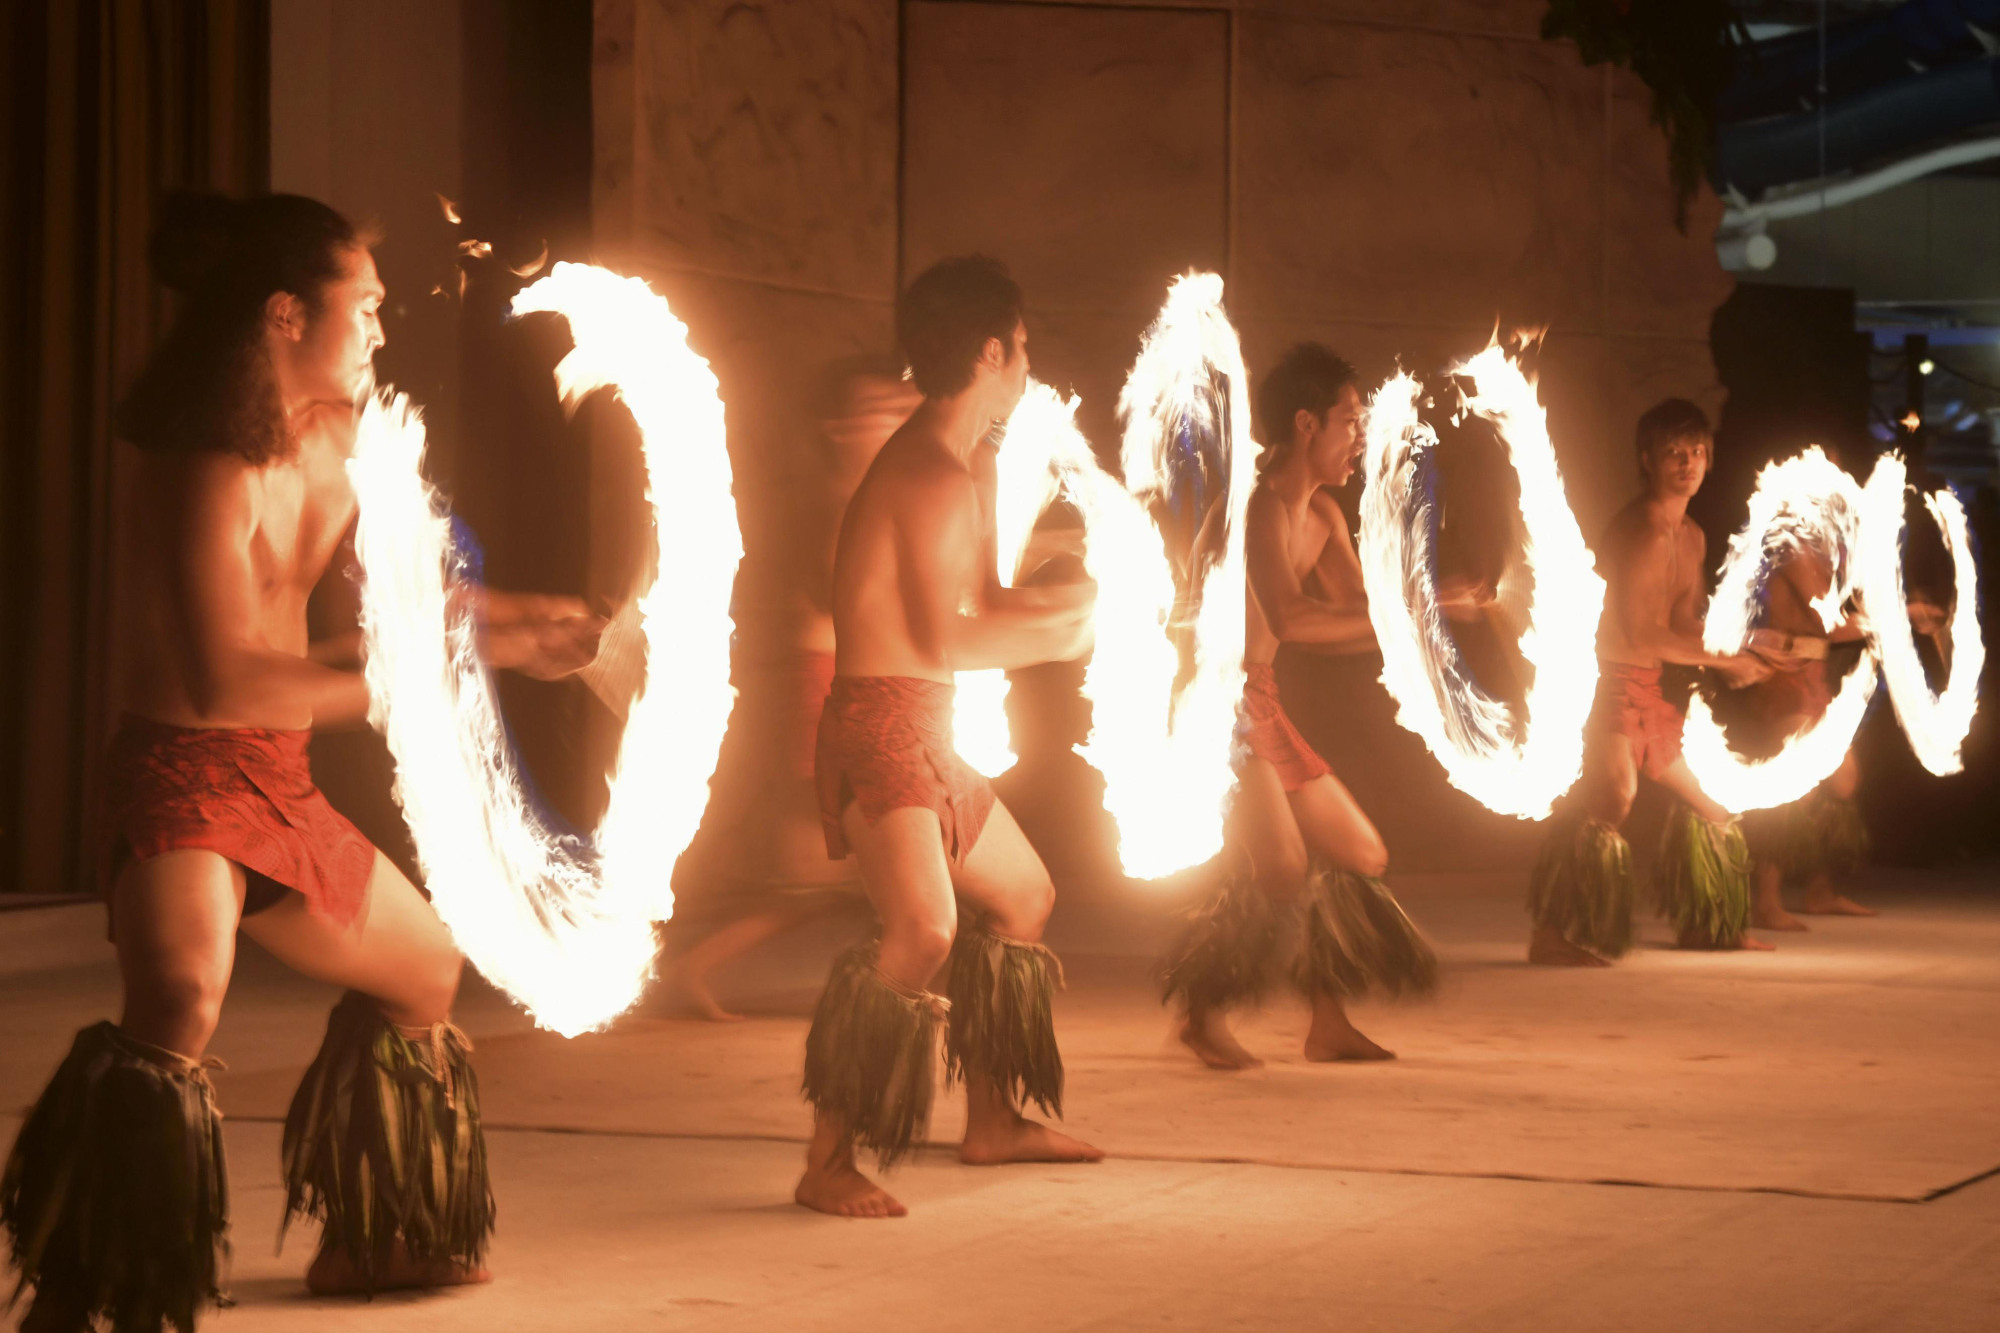 A Samoan fire knife dance is performed at a hot spring resort in Iwaki, Fukushima Prefecture, on Aug.1.   KYODO